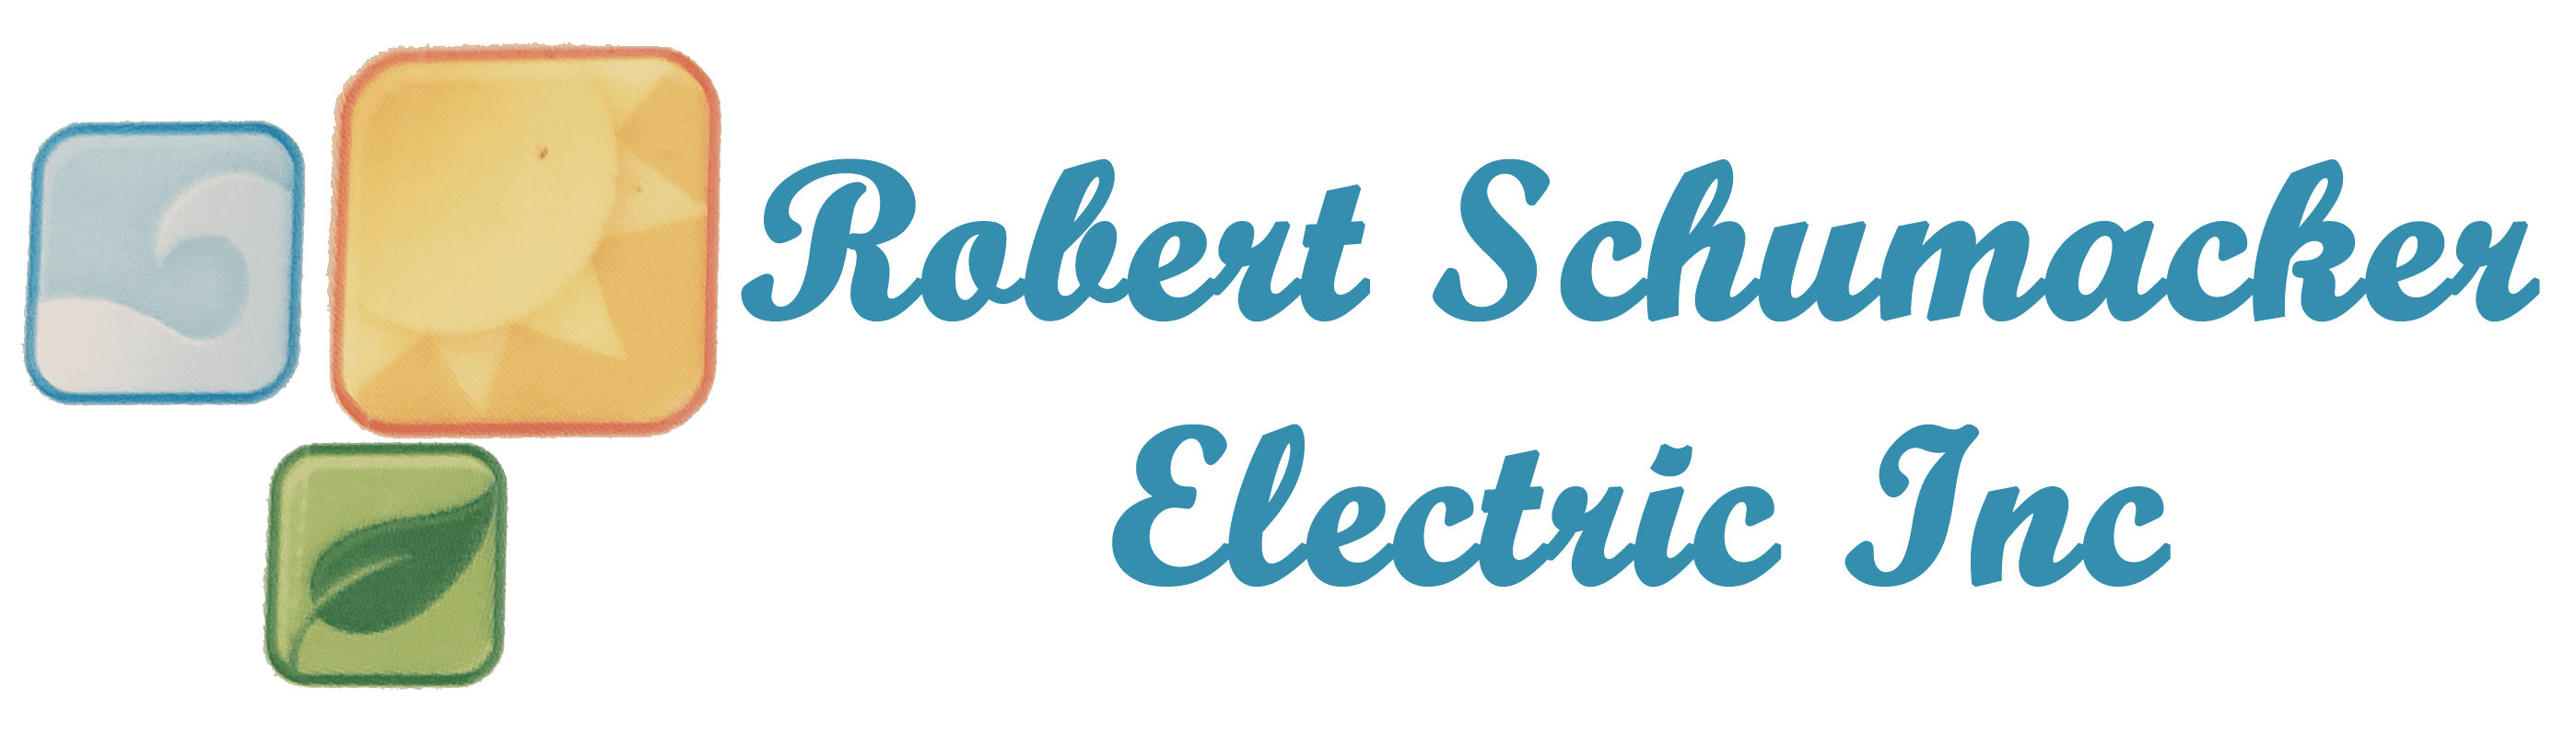 Robert Schumacker Electric Inc | Lombard, IL